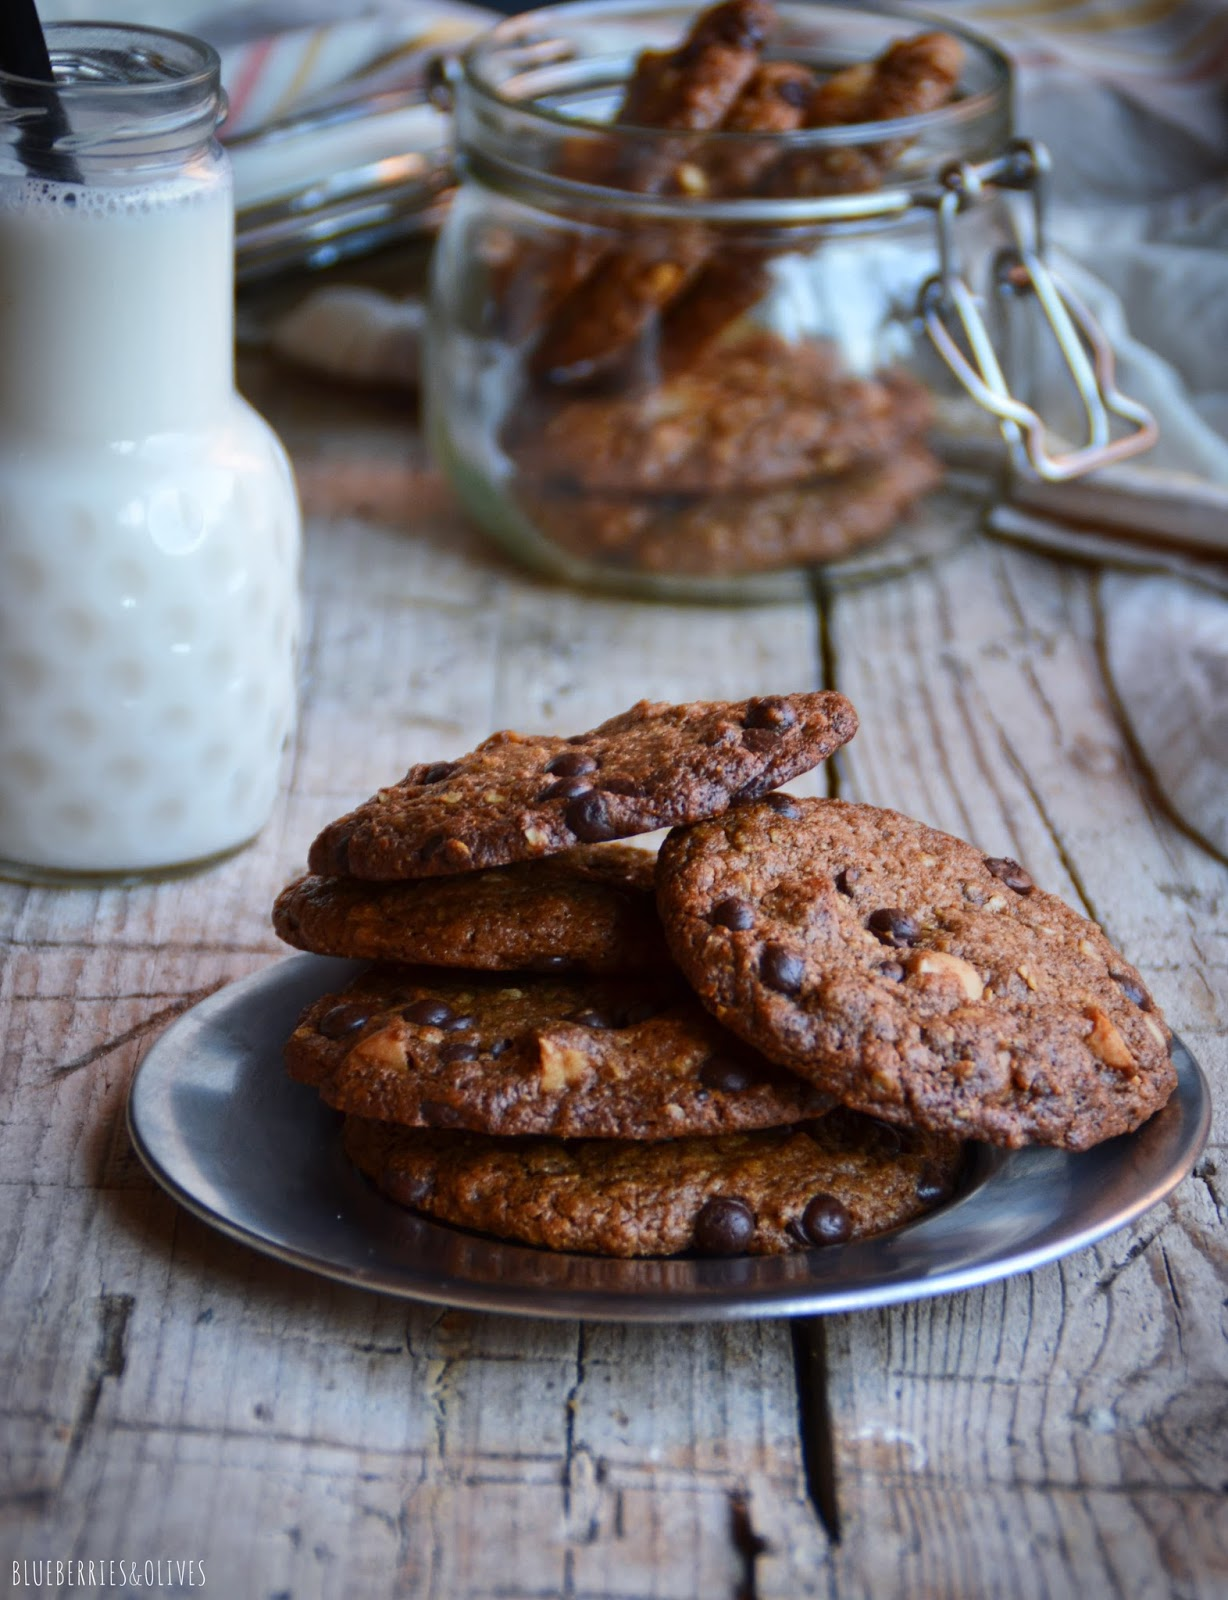 OATS, MACADAMIA AND CHOCOLATE COOKIES (GF, LF, VGT)